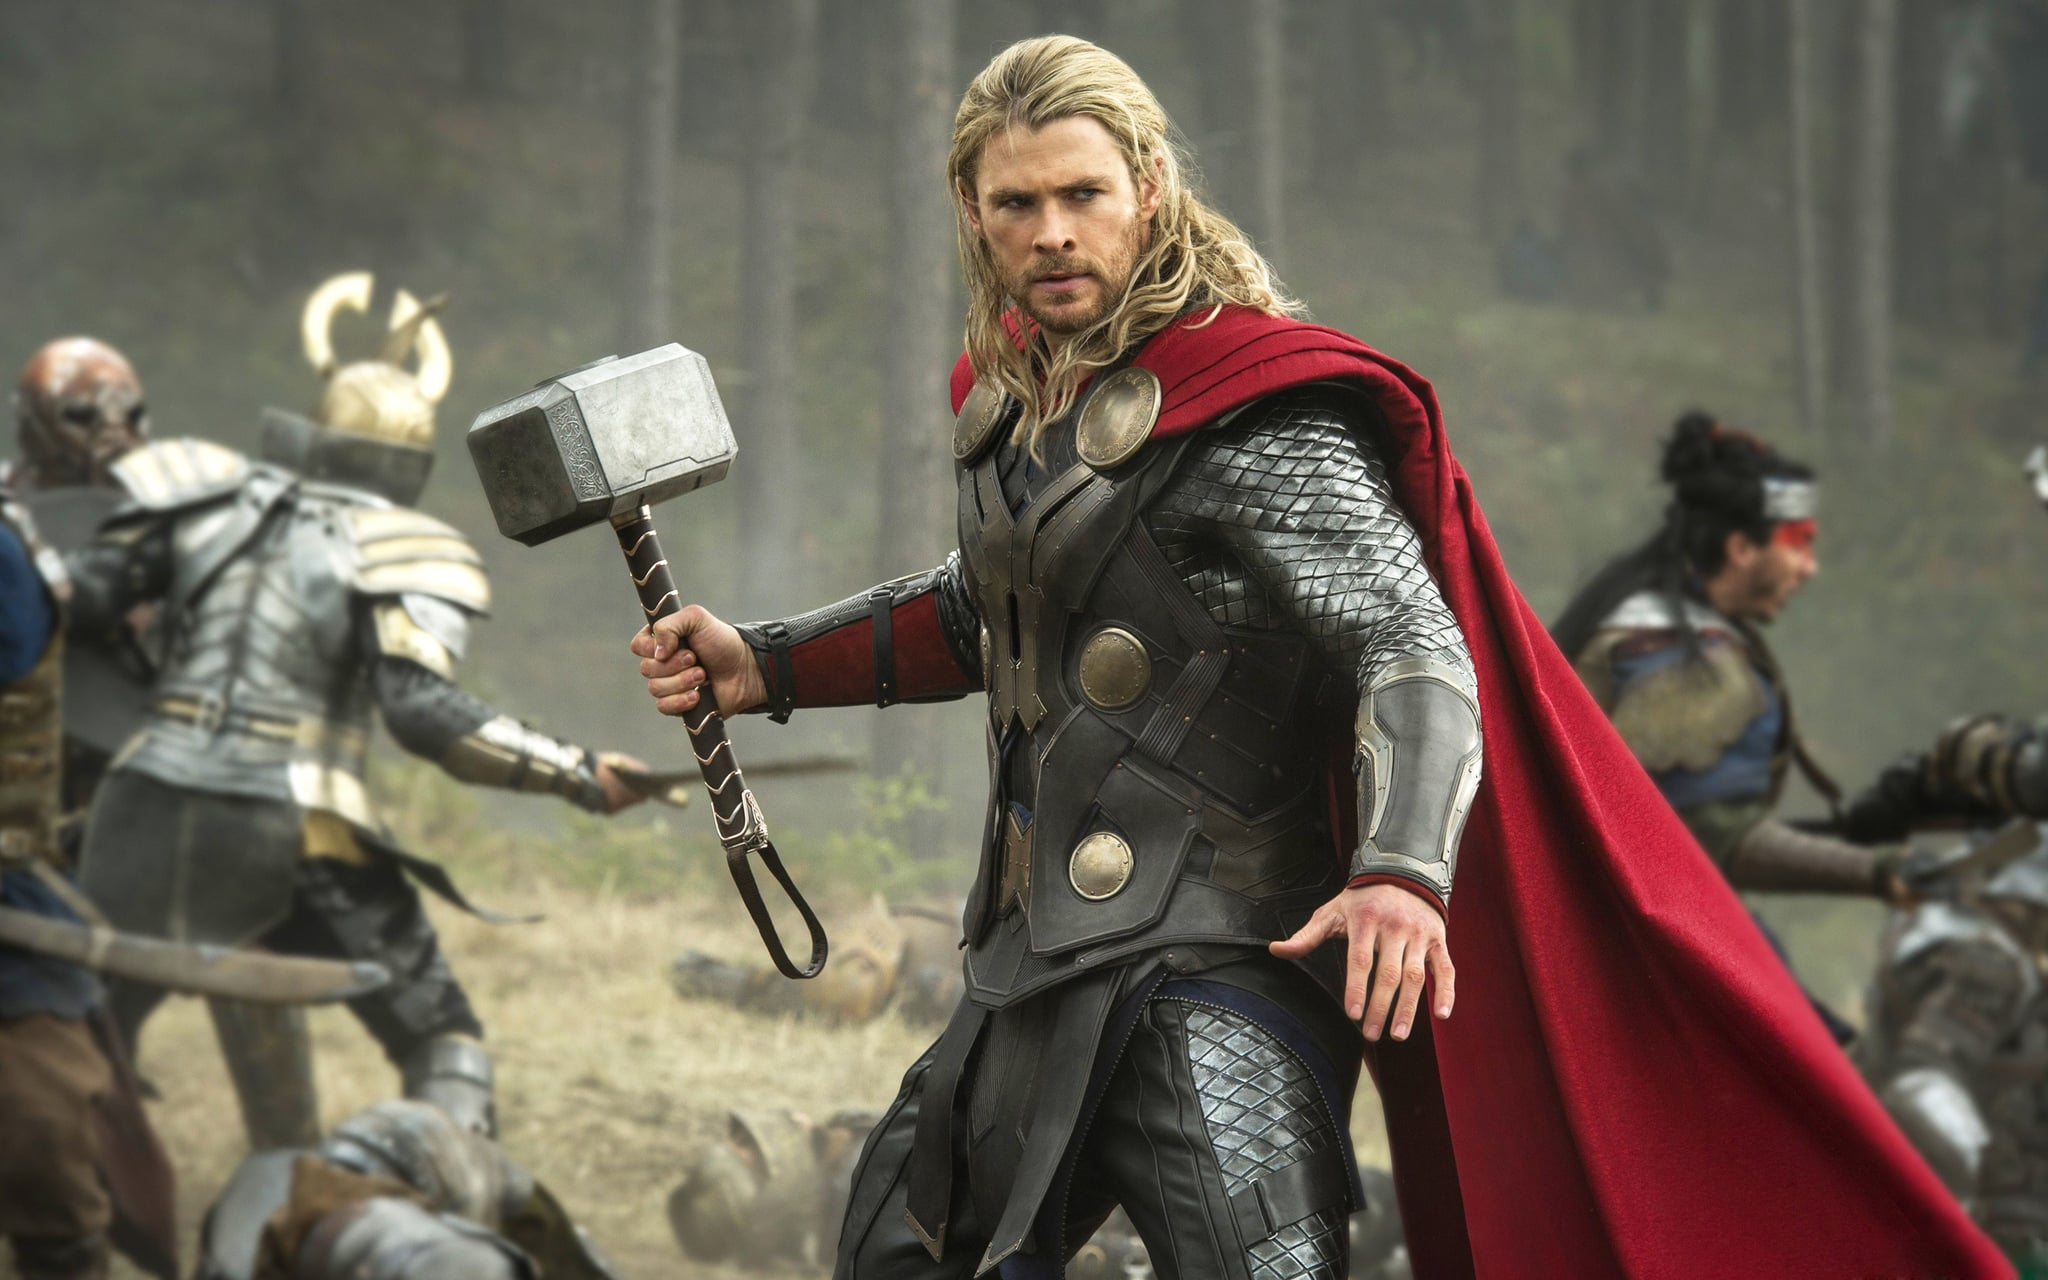 Thor: The Dark World  What it's about: After the events of The Avengers, Thor (Chris Hemsworth) realizes Jane's (Natalie Portman) life is in danger. He takes her up to his home planet, where he must enlist the help of the evil Loki (Tom Hiddleston) to defeat a new enemy. Why we're interested: We just can't get enough of Thor, plus have you seen Jane slapping Loki yet? It's amazing. When it opens: Nov. 8 Watch the trailer for Thor: The Dark World.